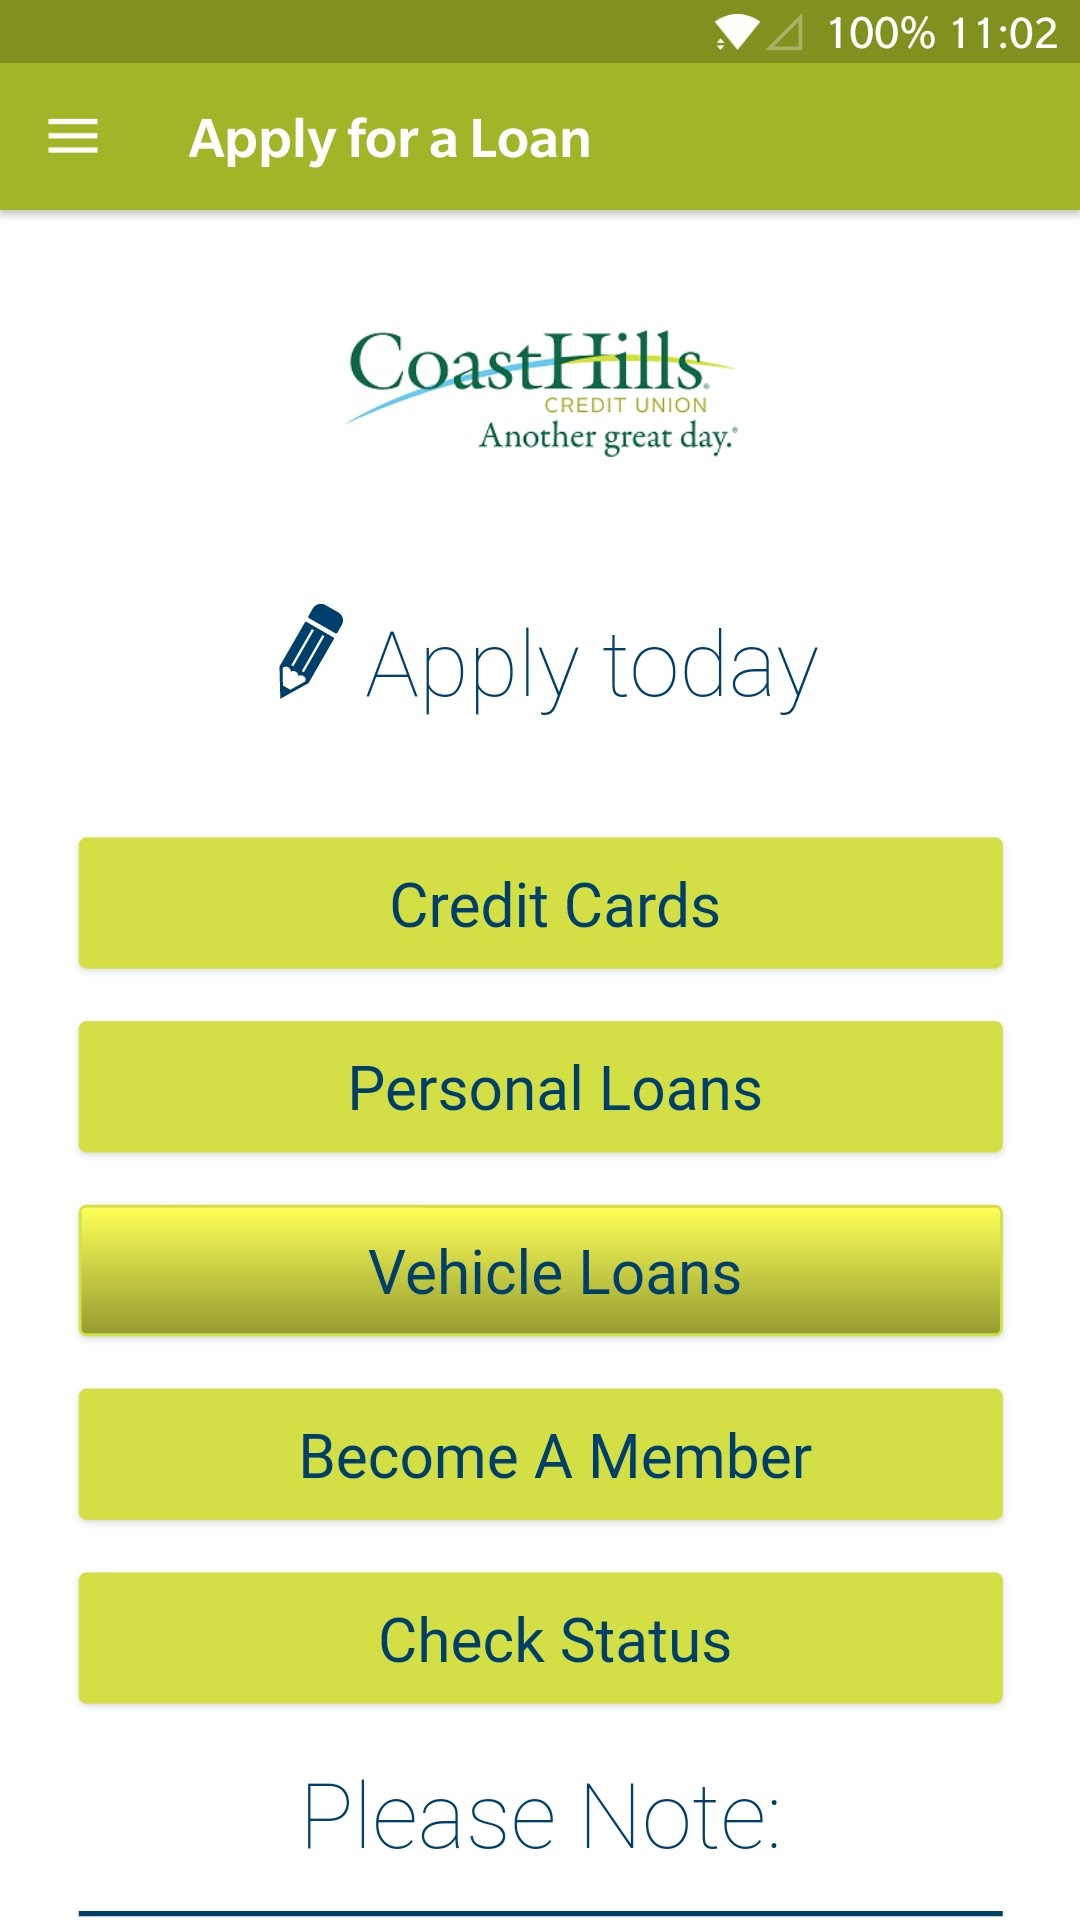 The Loan Applications screen of the CoastHills mobile banking app